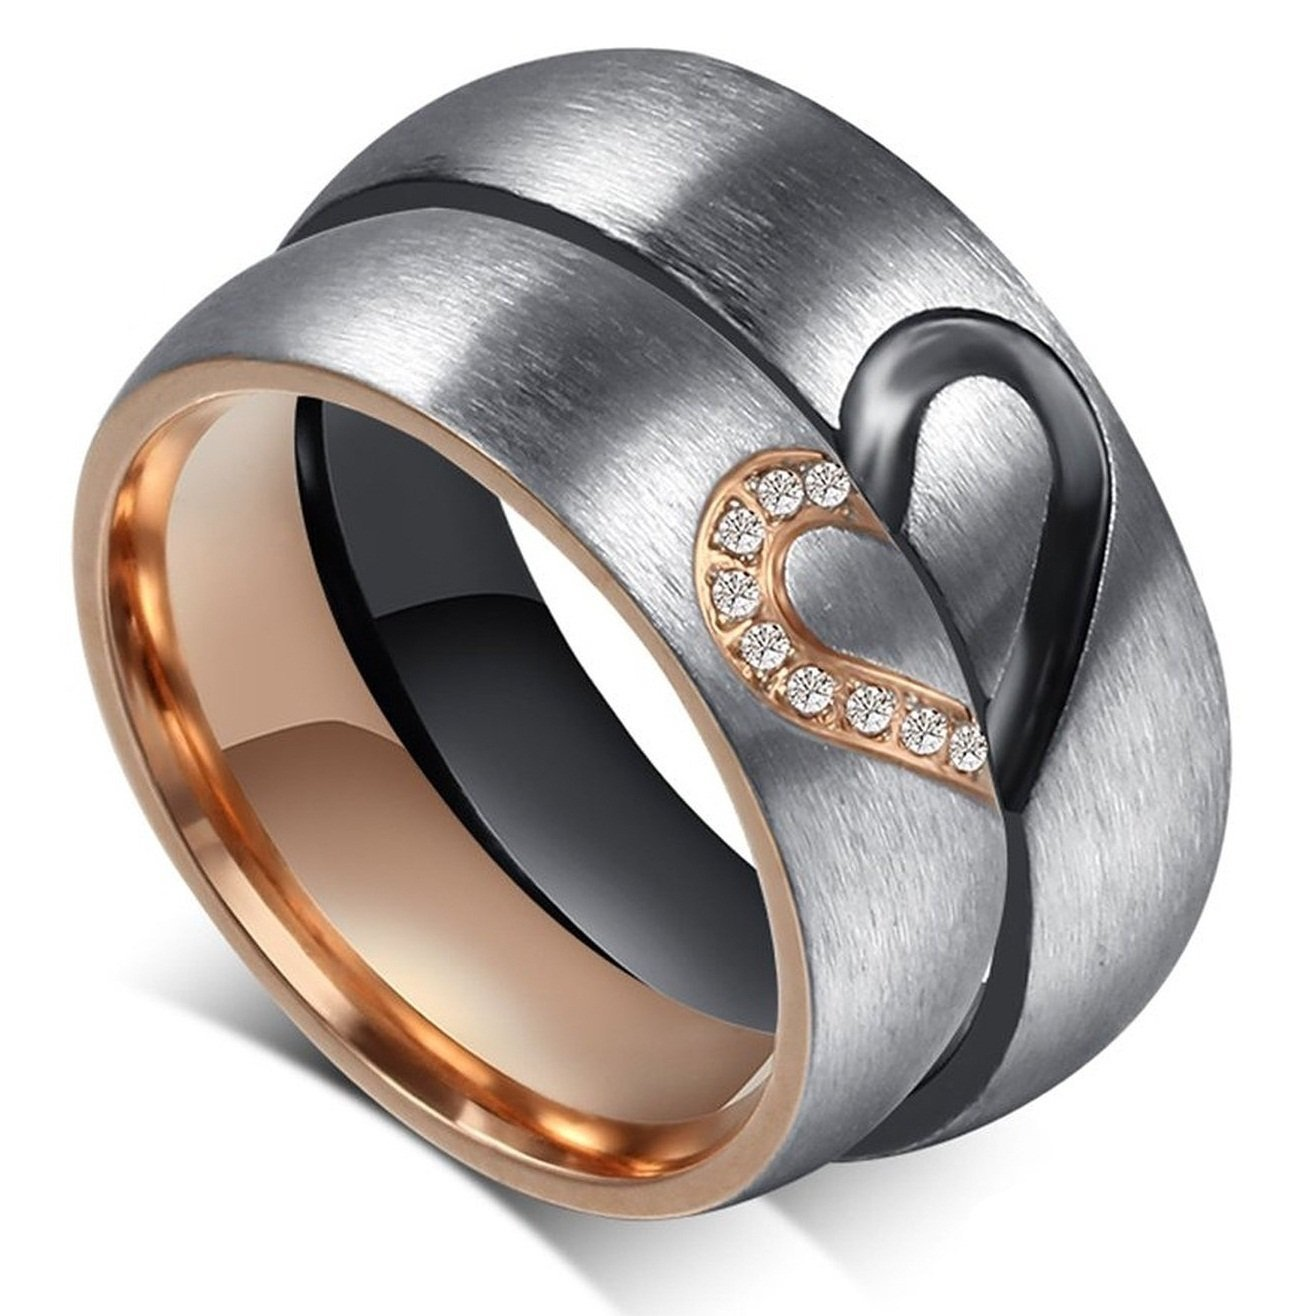 Global Jewelry Amazing Titanium Stainless Steel We Love Each Other Wedding Band Set Anniversary/Engagement/Promise/Couple Ring Best Gift! GJ-46688